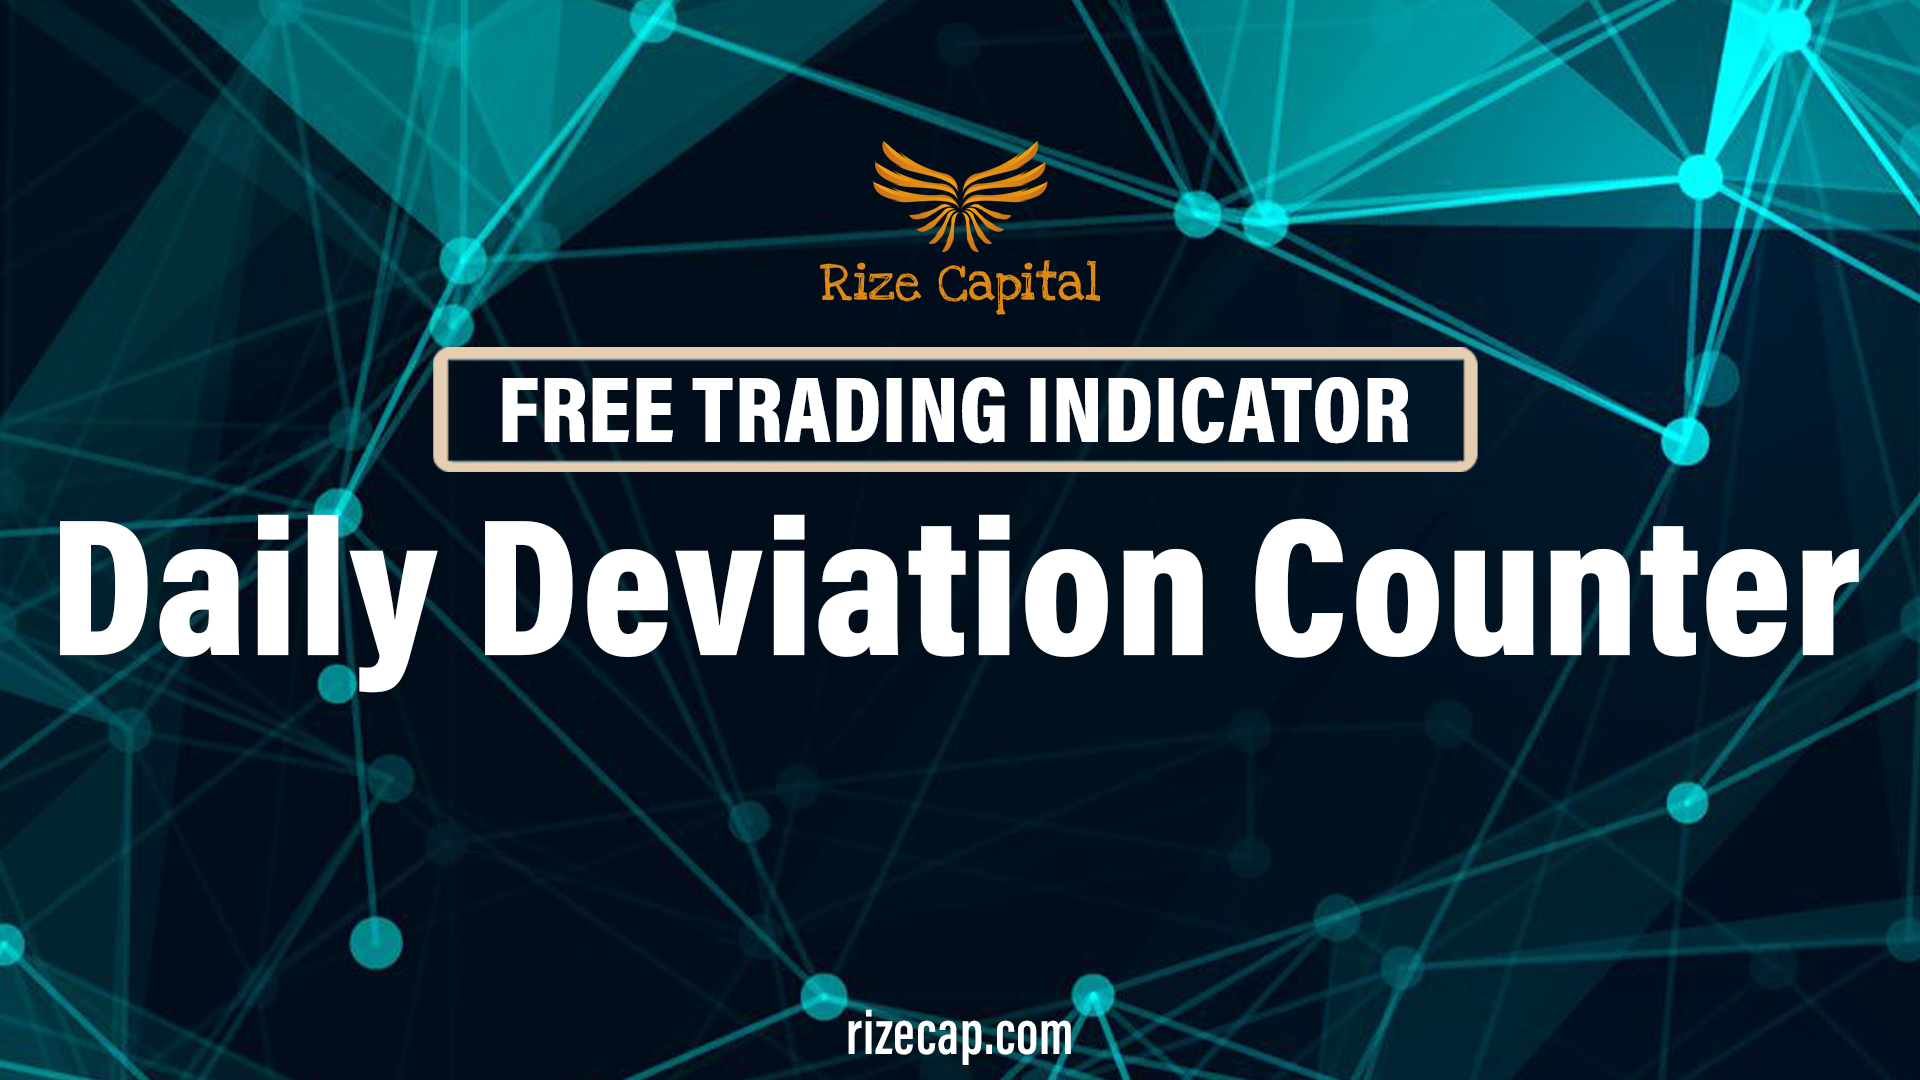 Daily Deviation Counter Free indicator